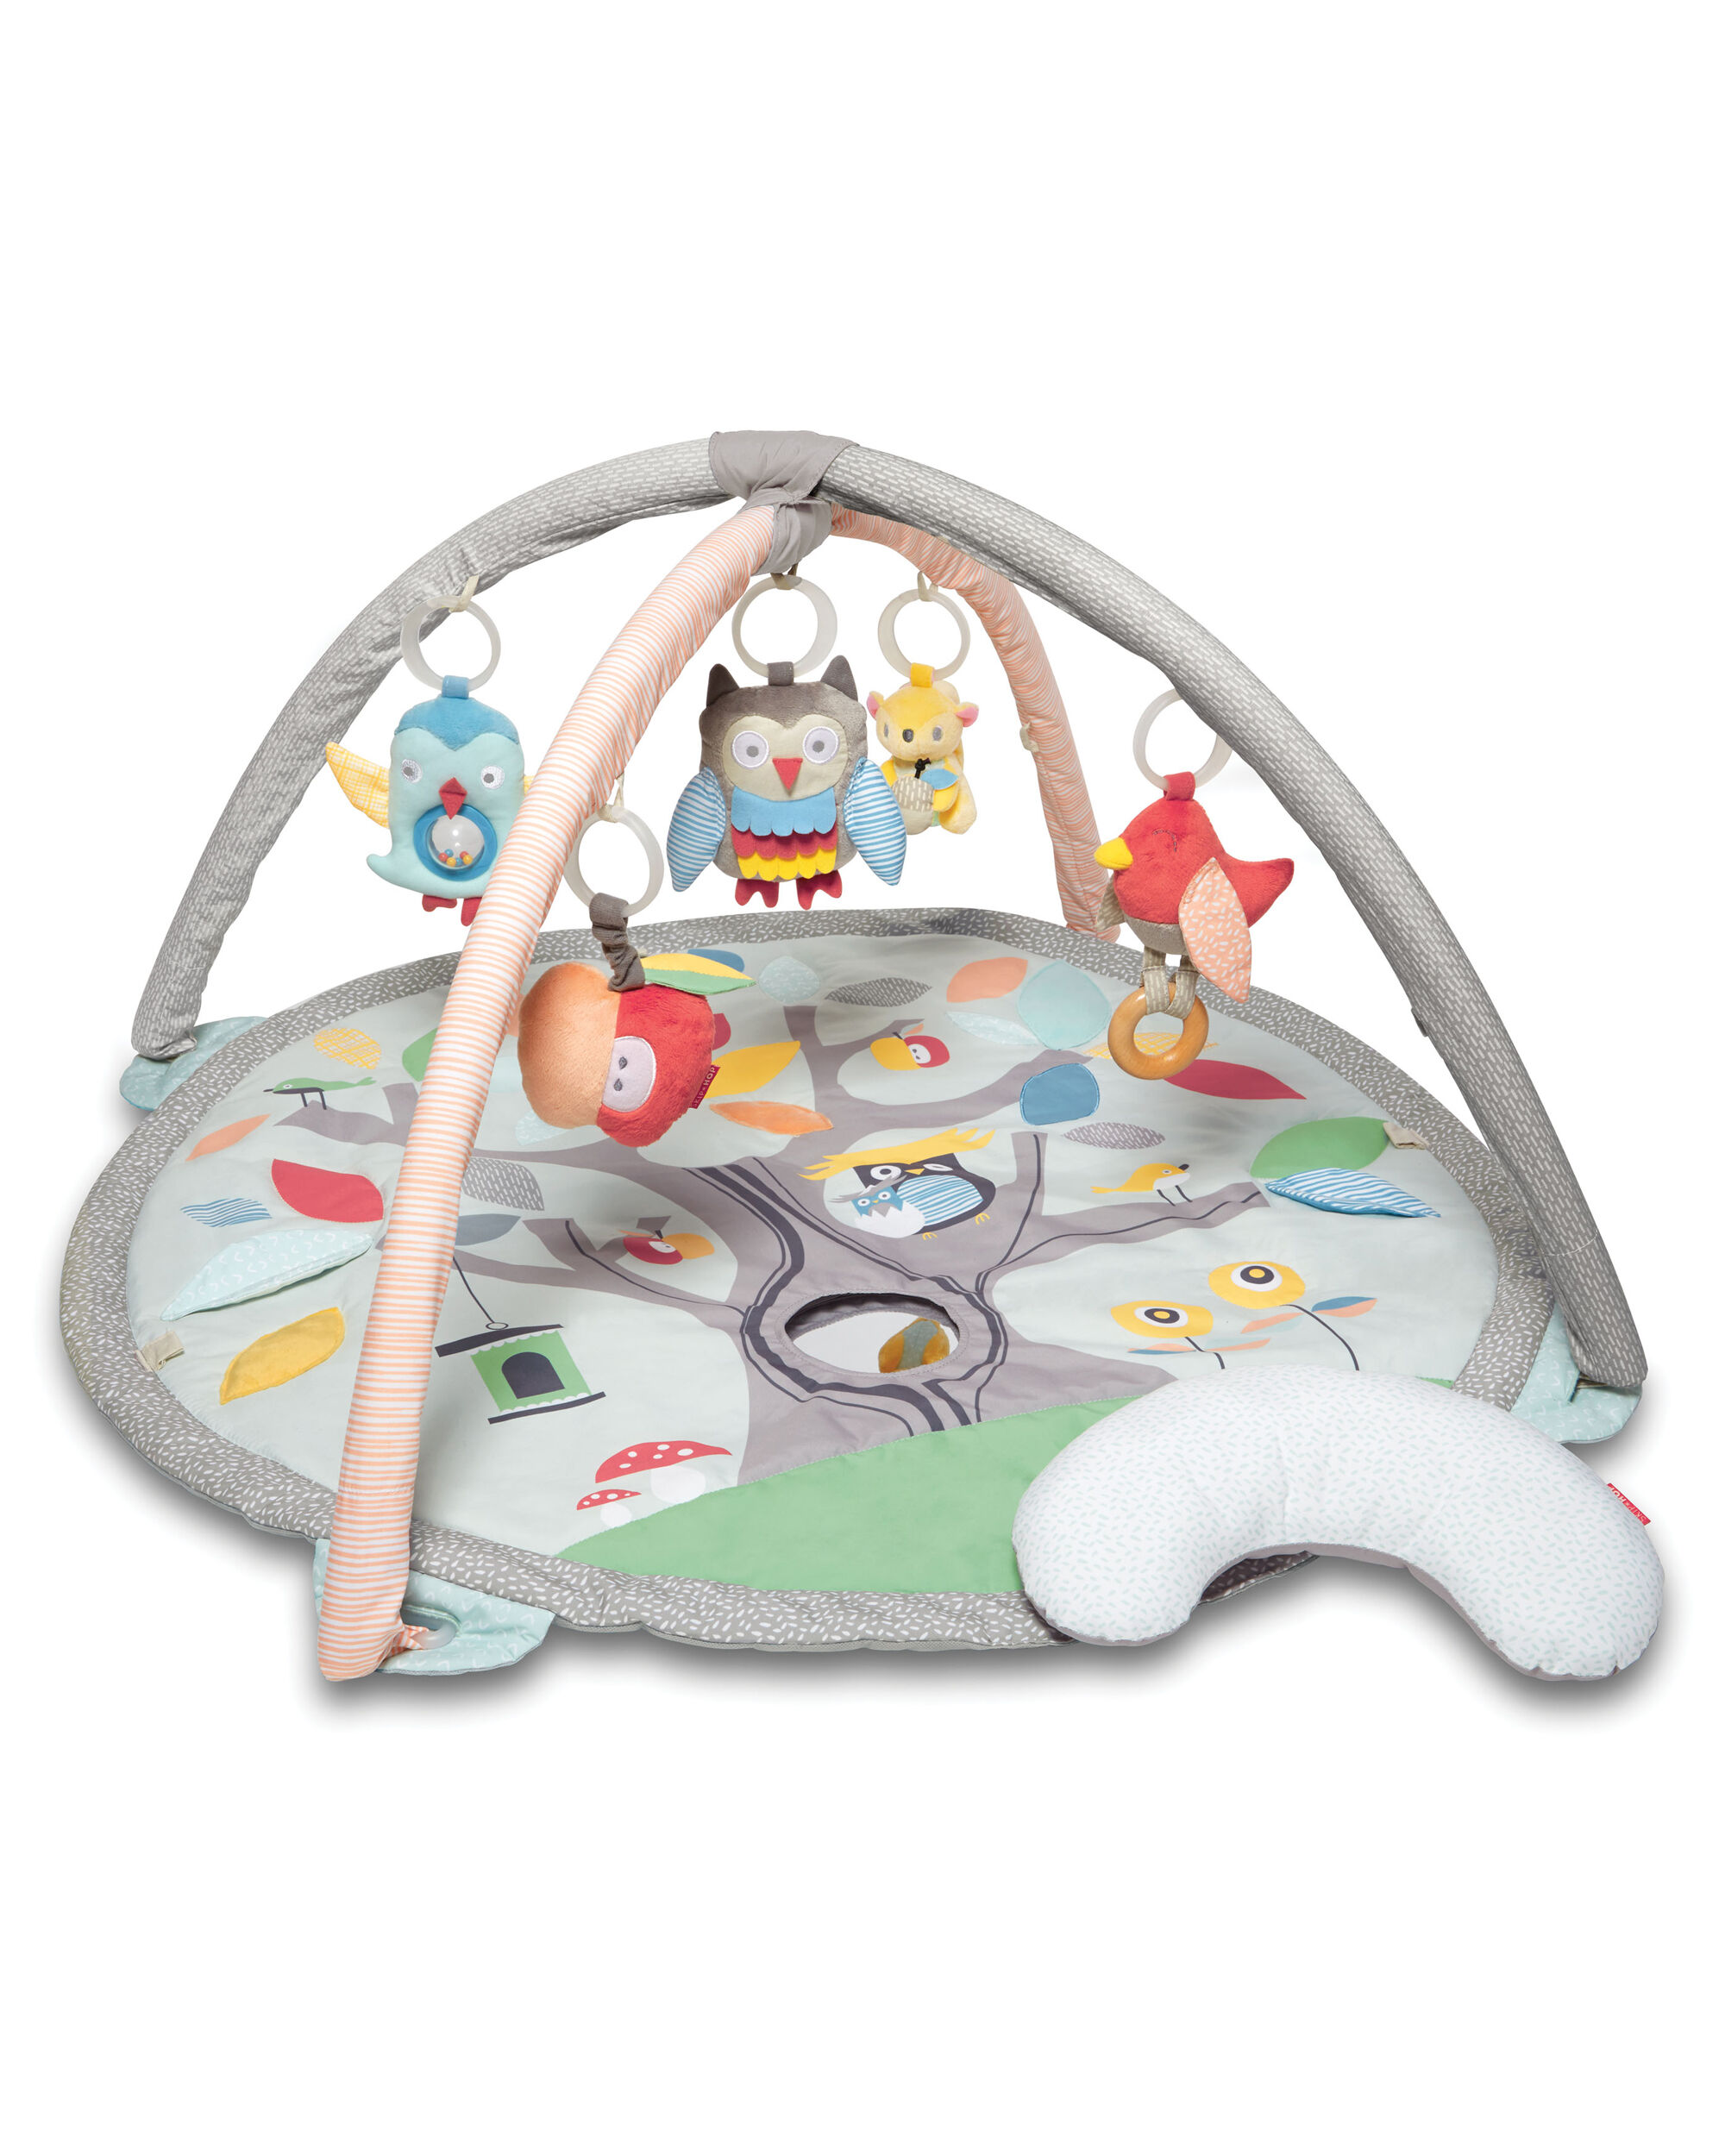 Treetop Friends Baby Activity Gym